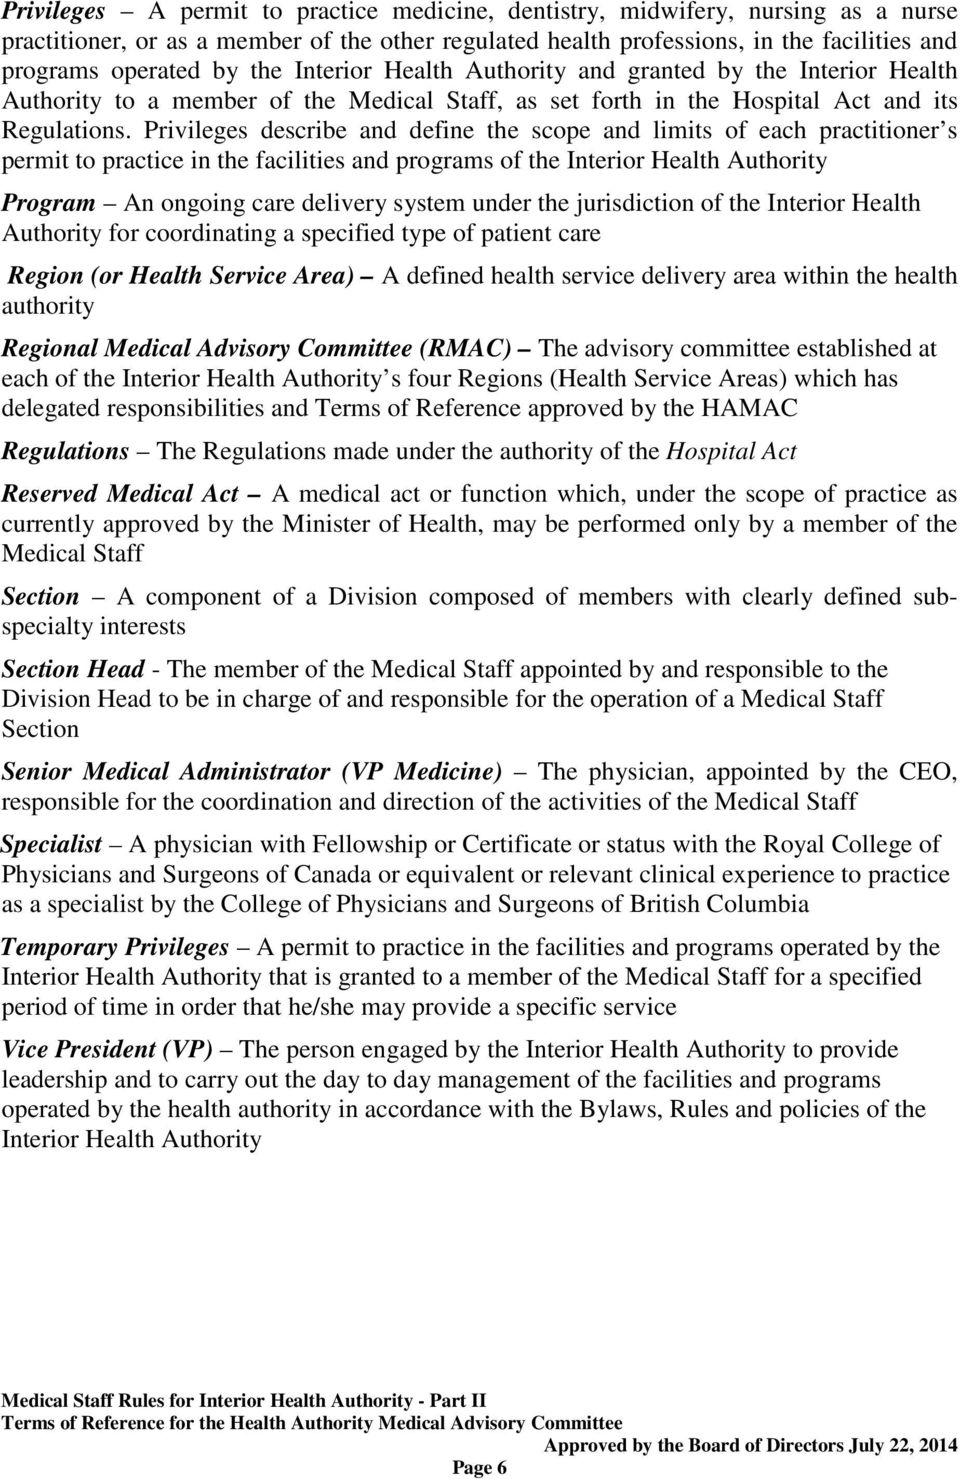 Privileges describe and define the scope and limits of each practitioner s permit to practice in the facilities and programs of the Interior Health Authority Program An ongoing care delivery system